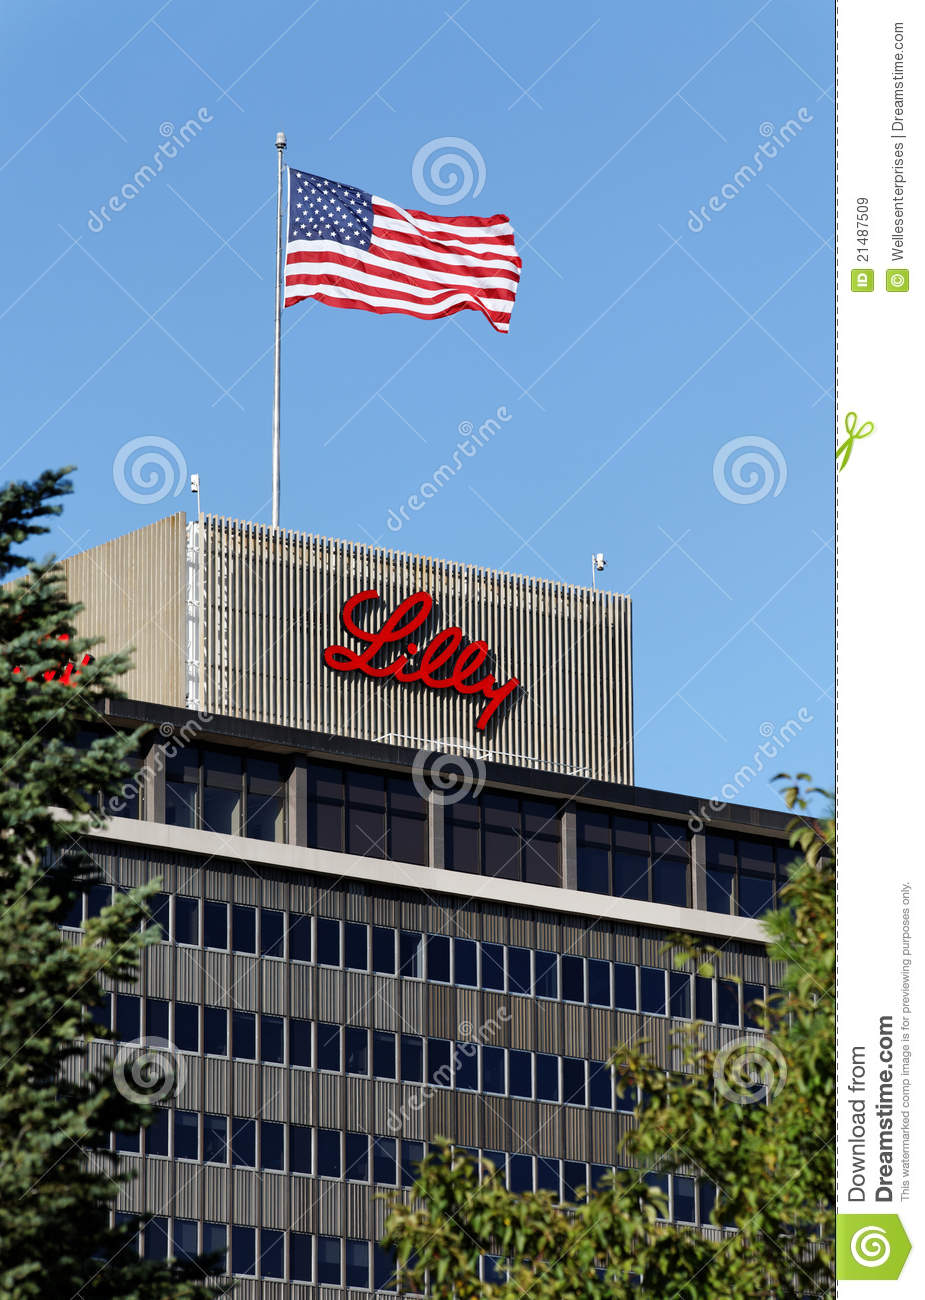 eli lilly and company world headquarters building editorial stock image image 21487509